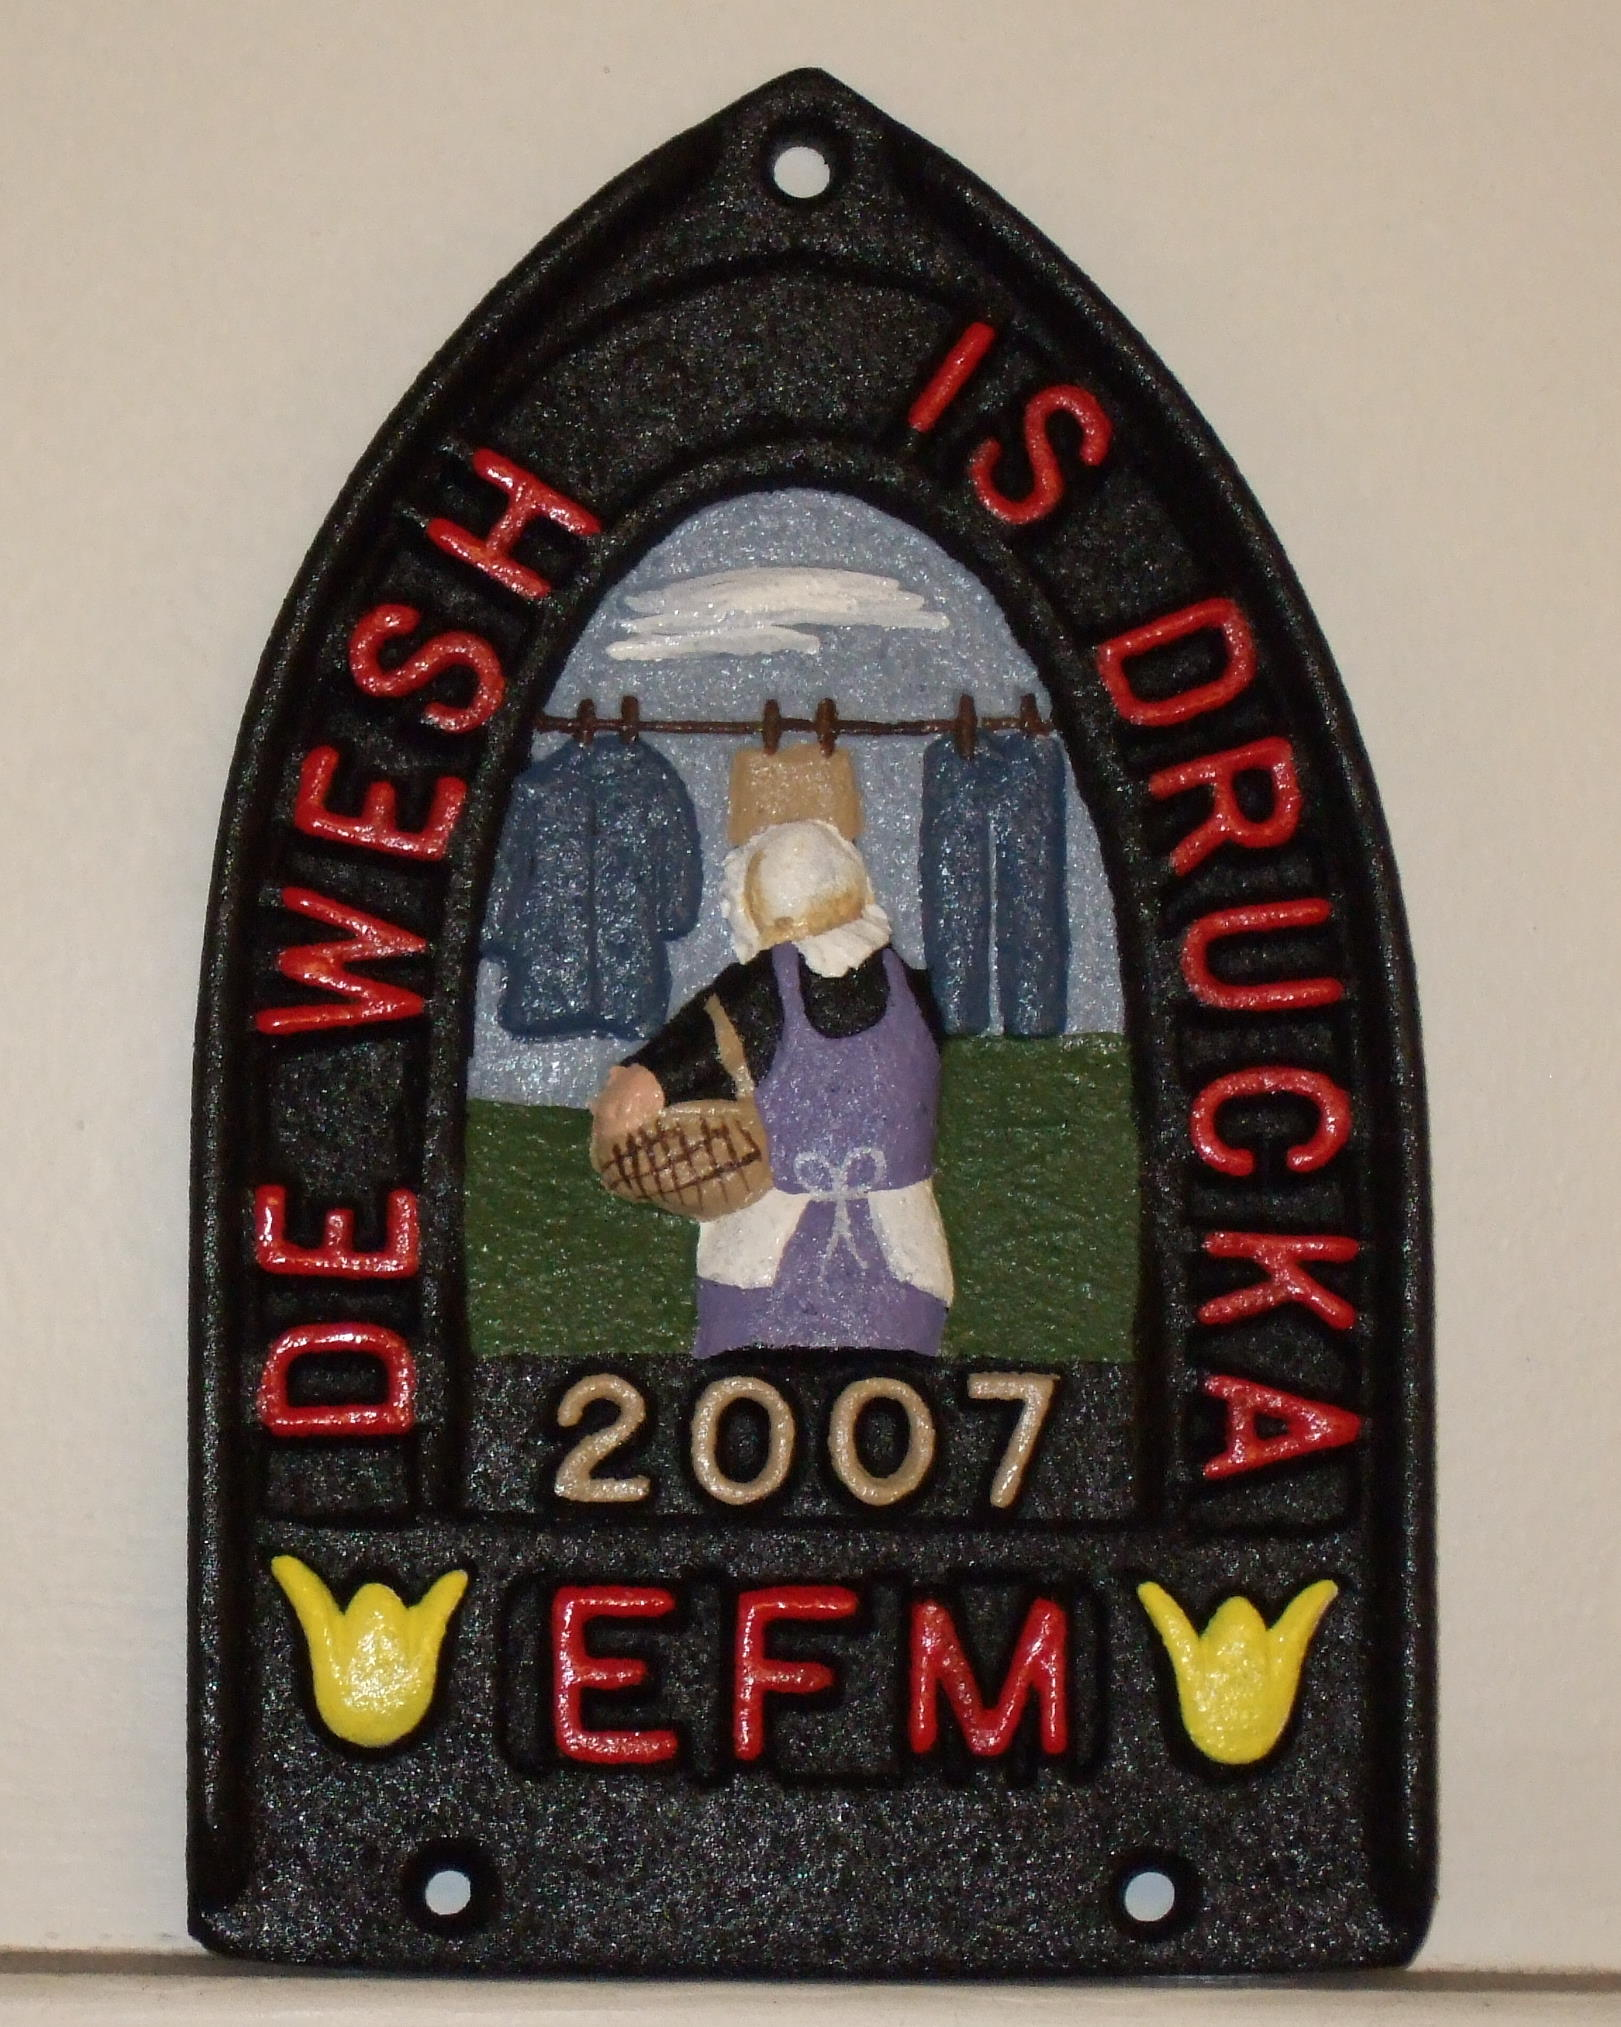 EFM Trivet Issued in 2007